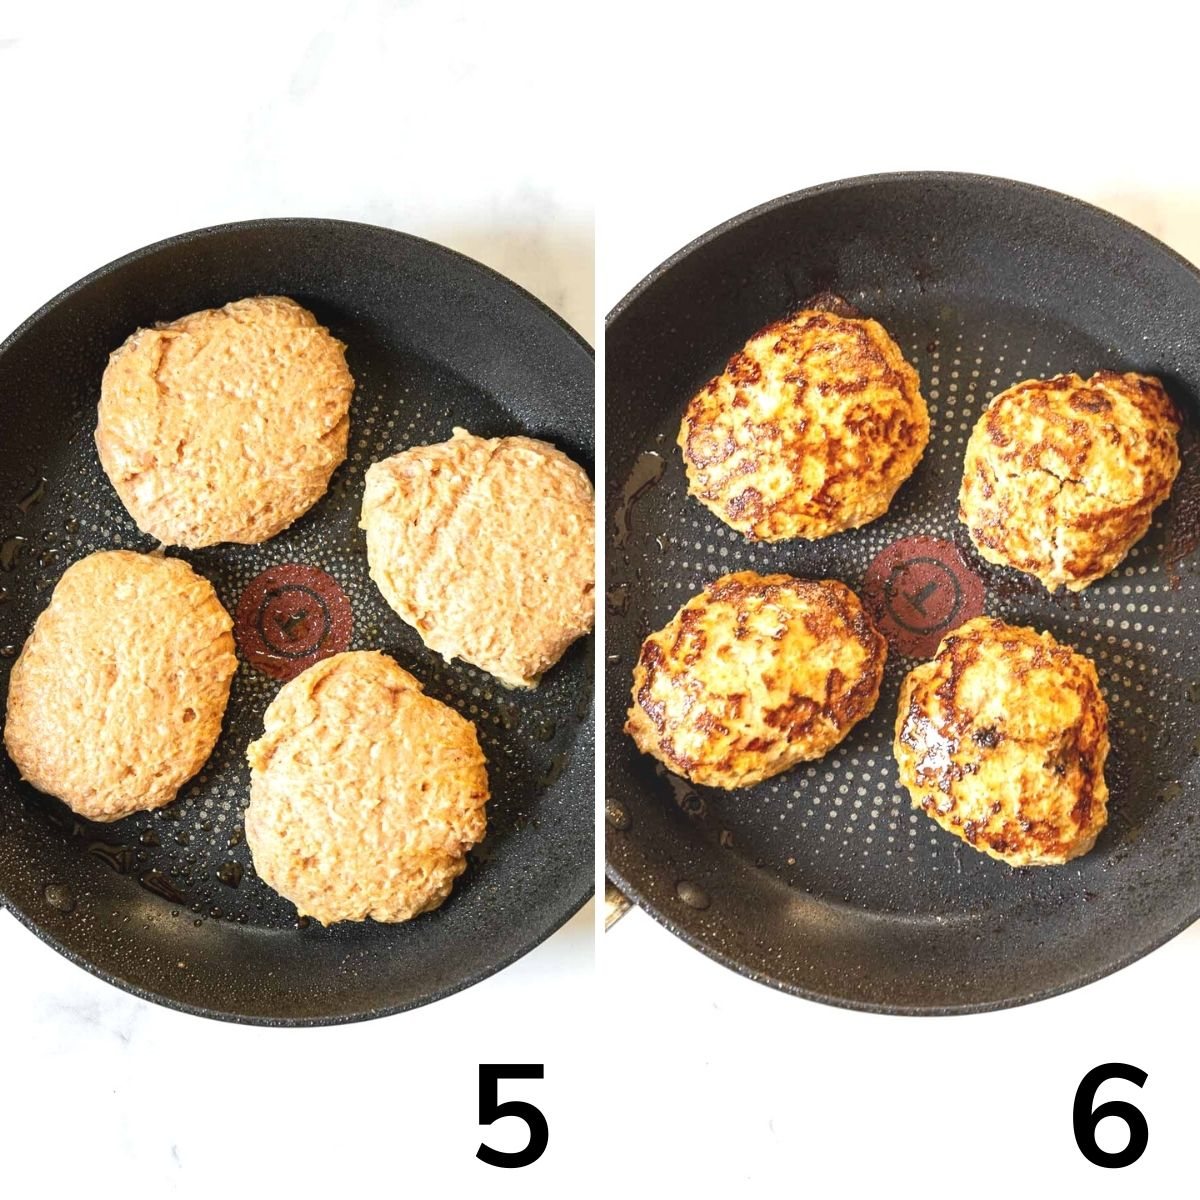 Spicy turkey burgers in a skillet--one picture are raw burgers, next picture is cooked burgers.